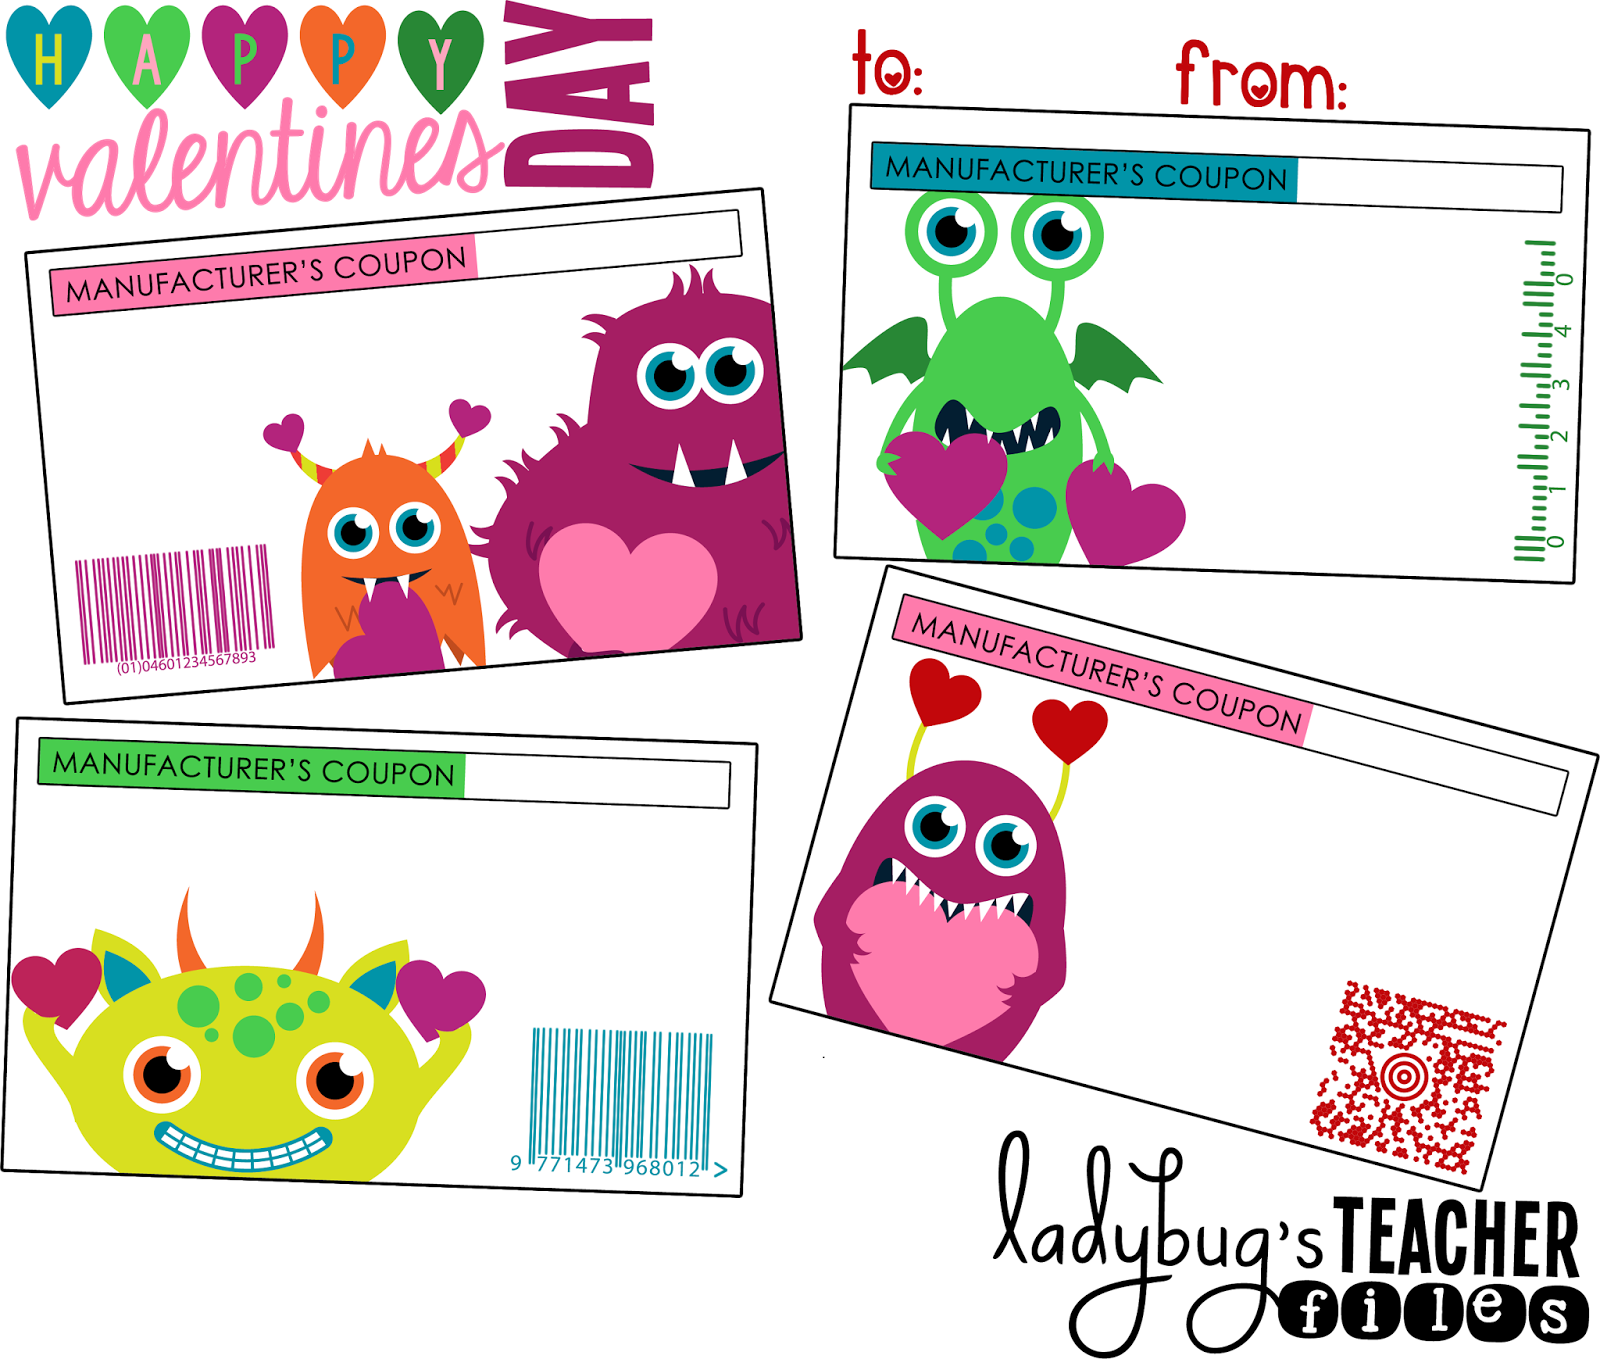 http://www.ladybugsteacherfiles.com/2014/02/editable-valentine-coupons-file-to-share.html